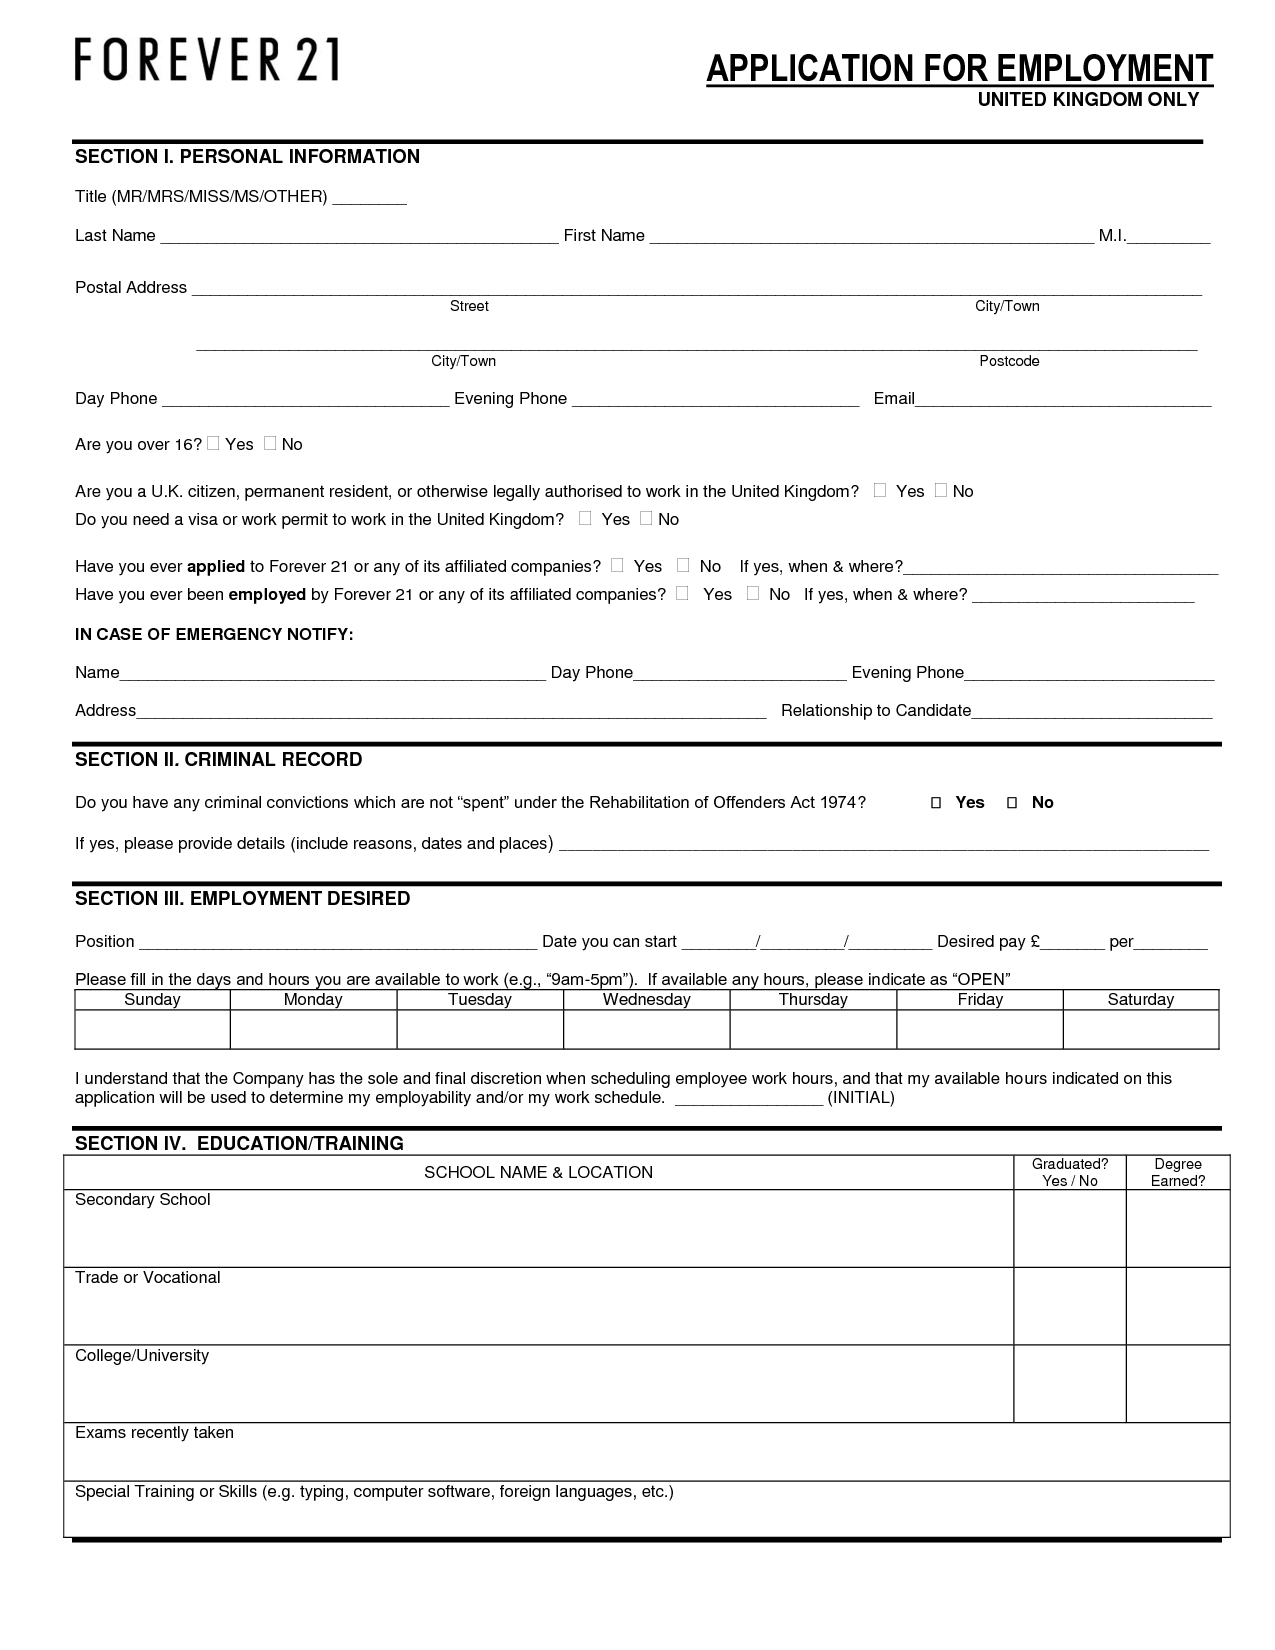 Target Job Application Form ] | Target Job Application Form Online ...